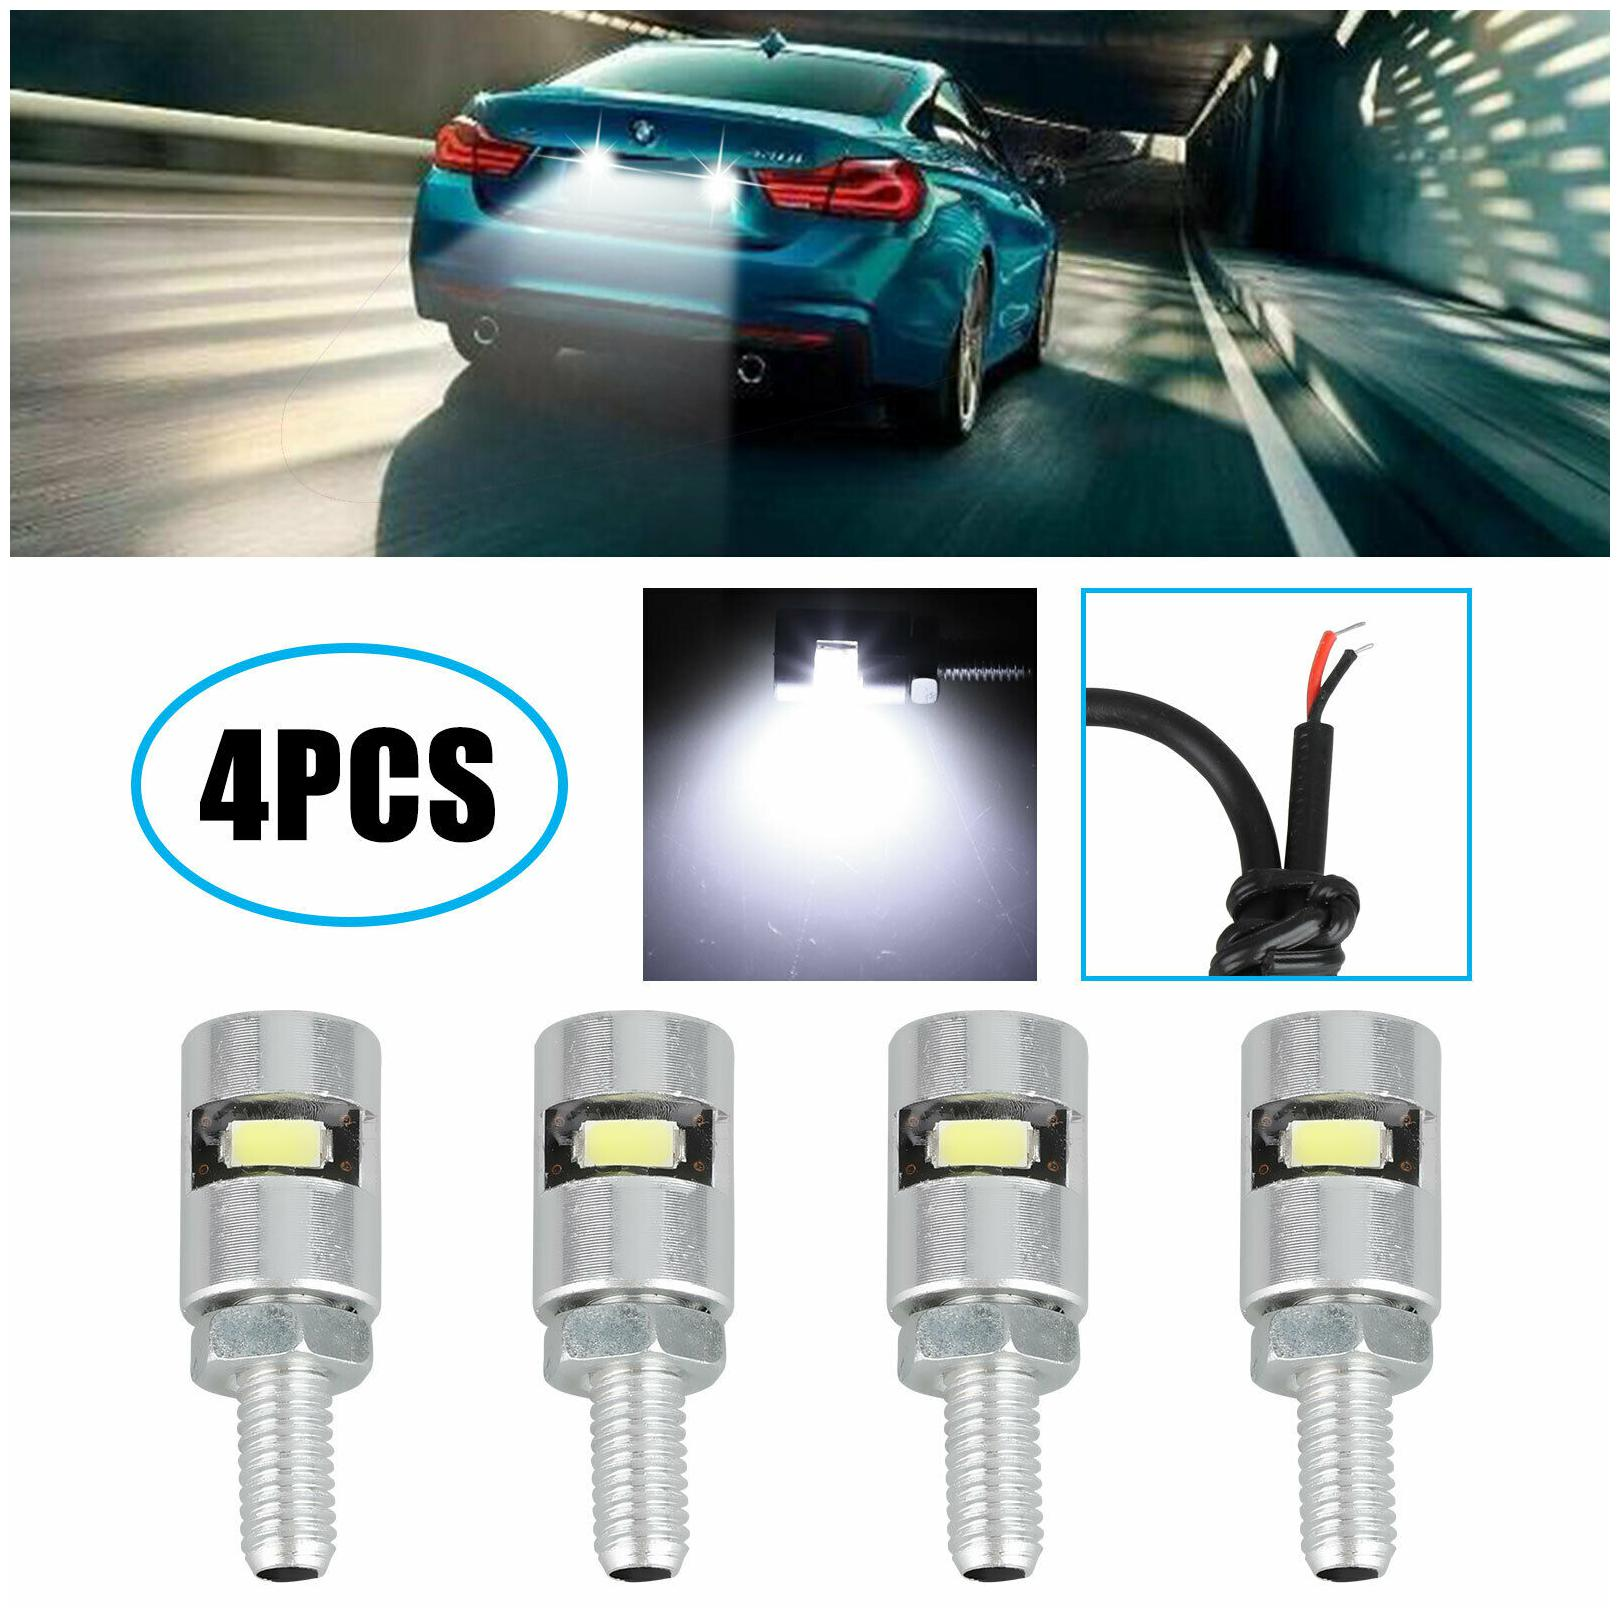 4x High Quality Motorcycle Screw SMD LED Bolt Lamp Car Auto License Plate Light